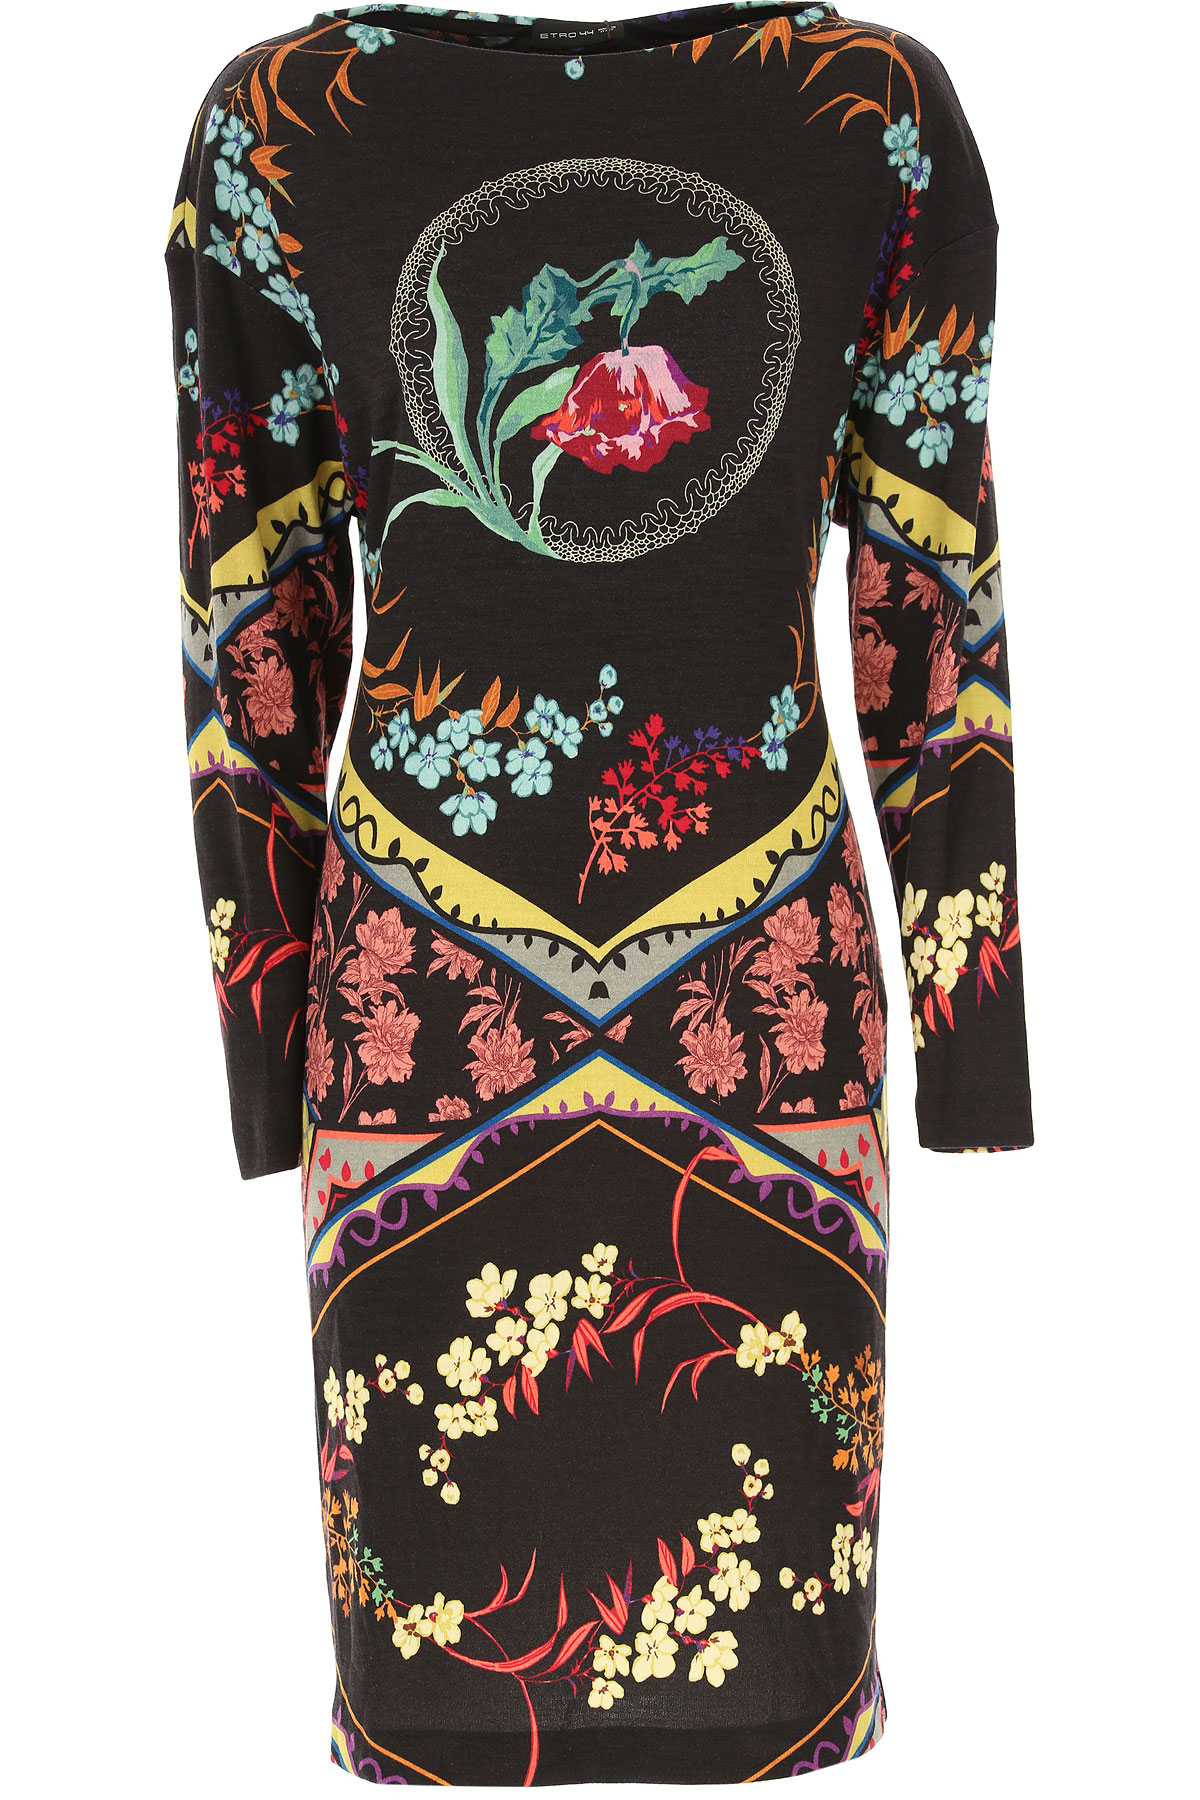 Etro Dress for Women, Evening Cocktail Party On Sale, Black, Wool, 2019, 10 6 8